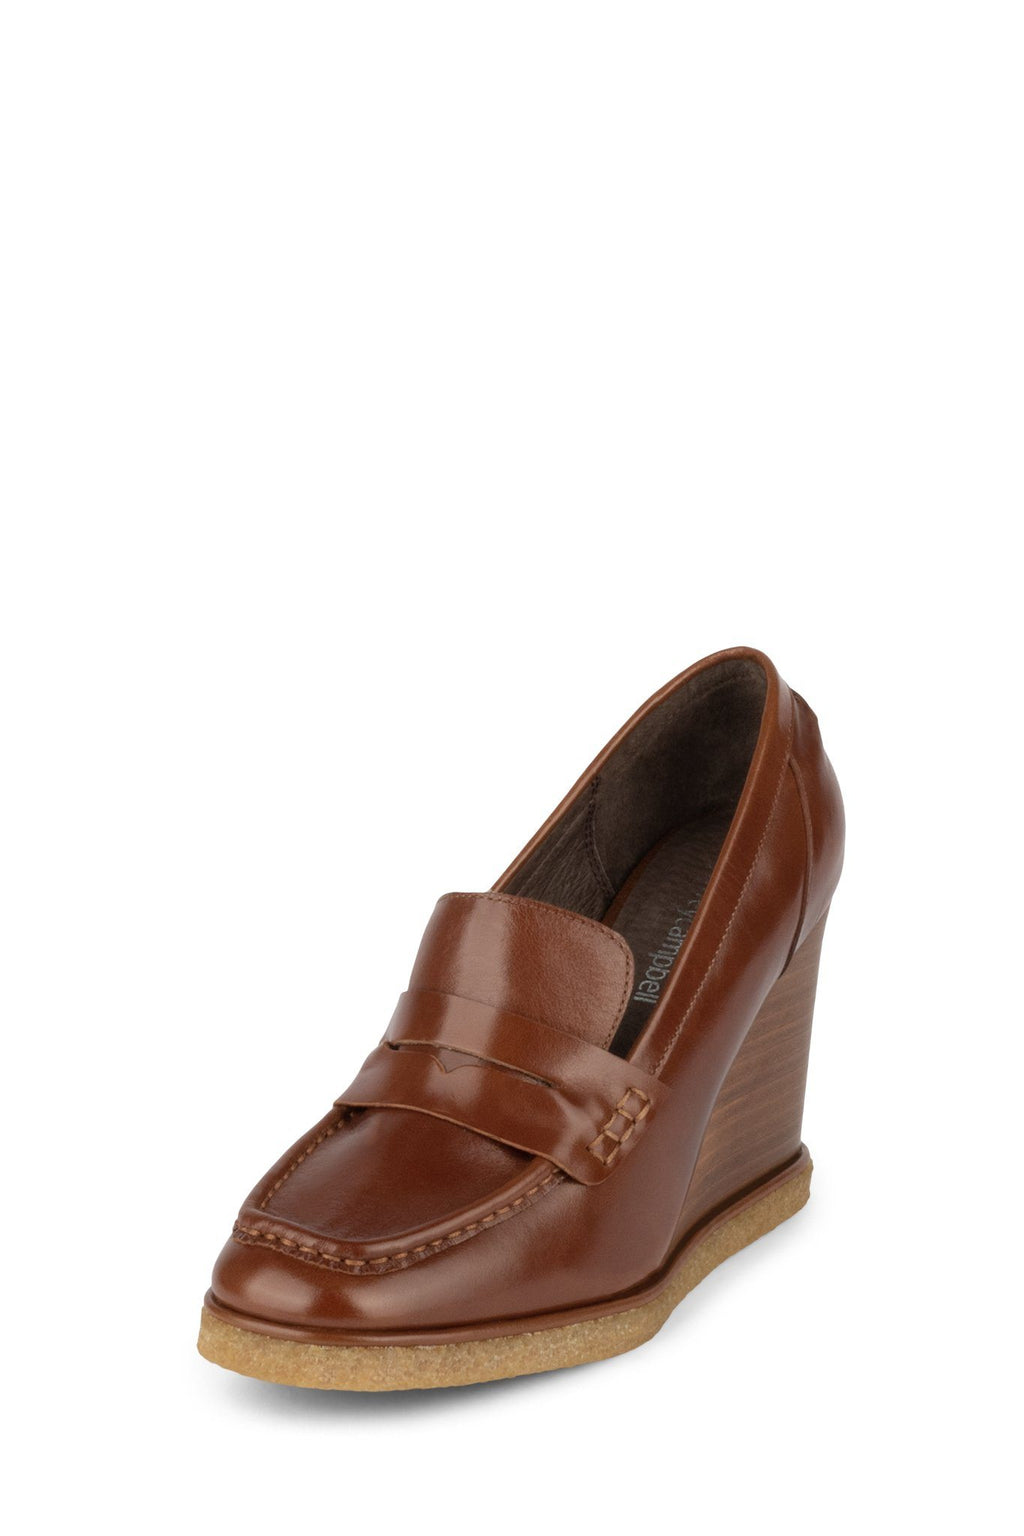 AUBERGE Loafer YYH